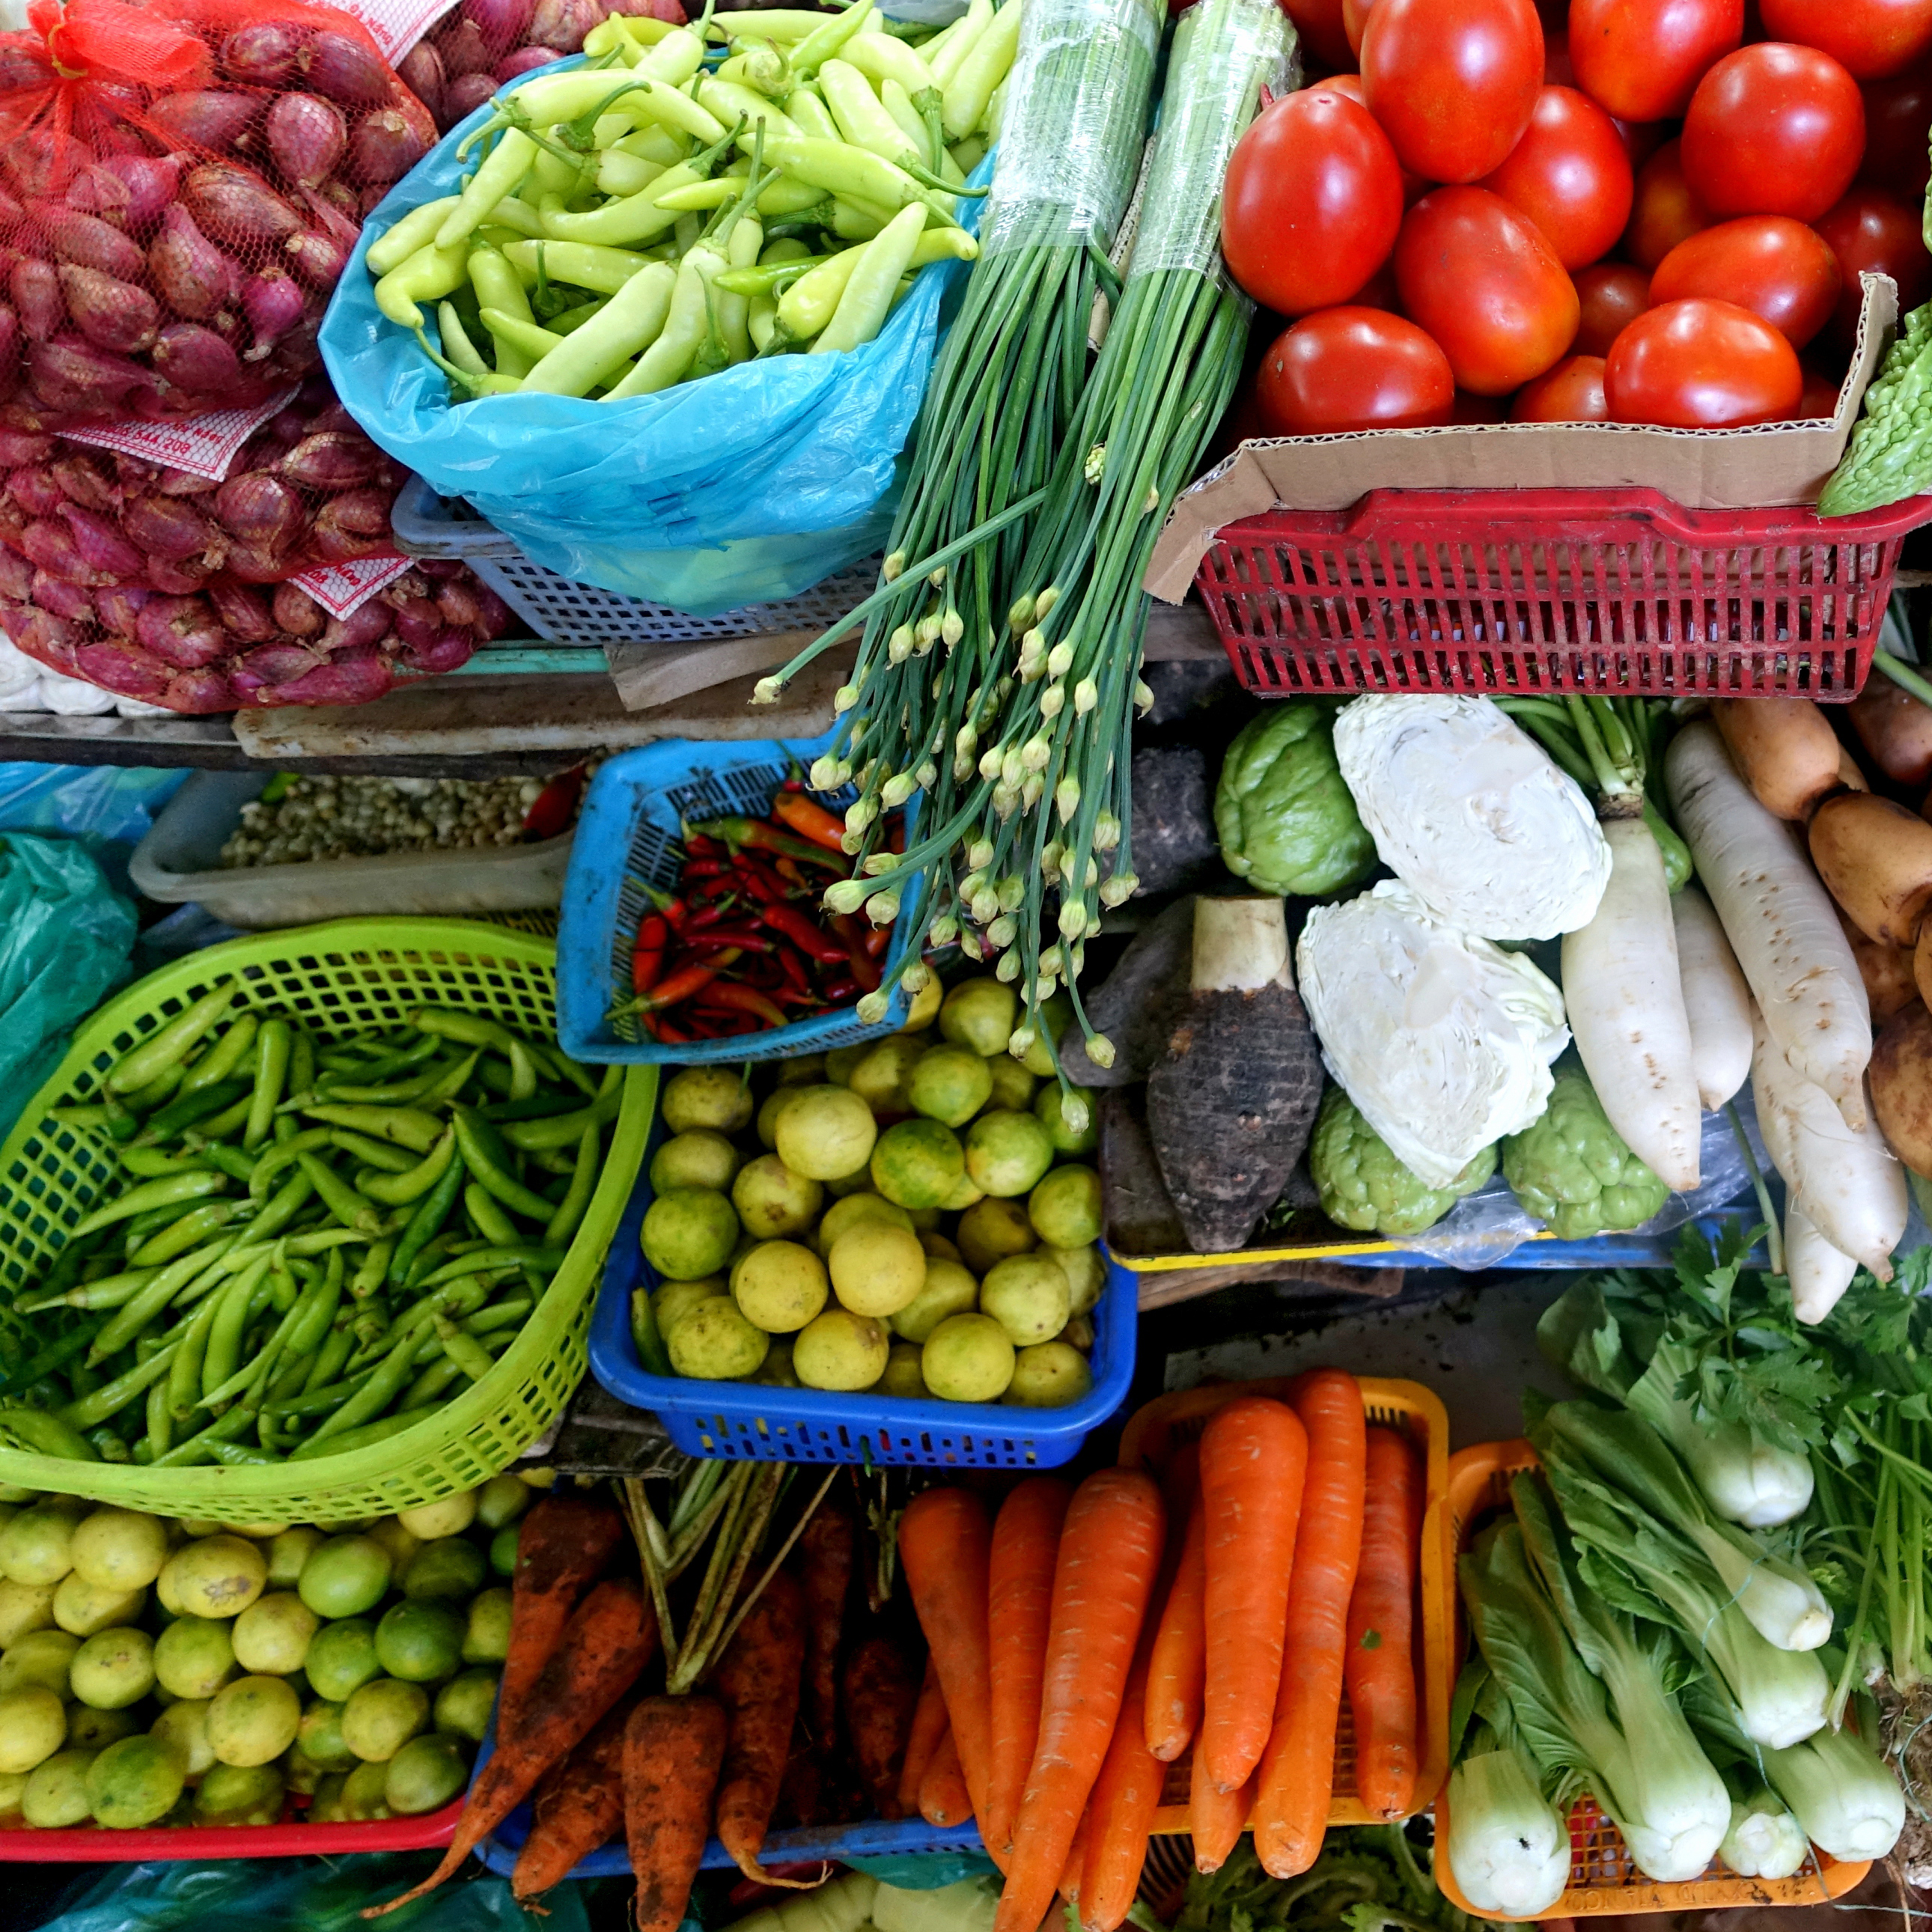 A display of a large variety of brightly colored nutritious and wholesome vegetables